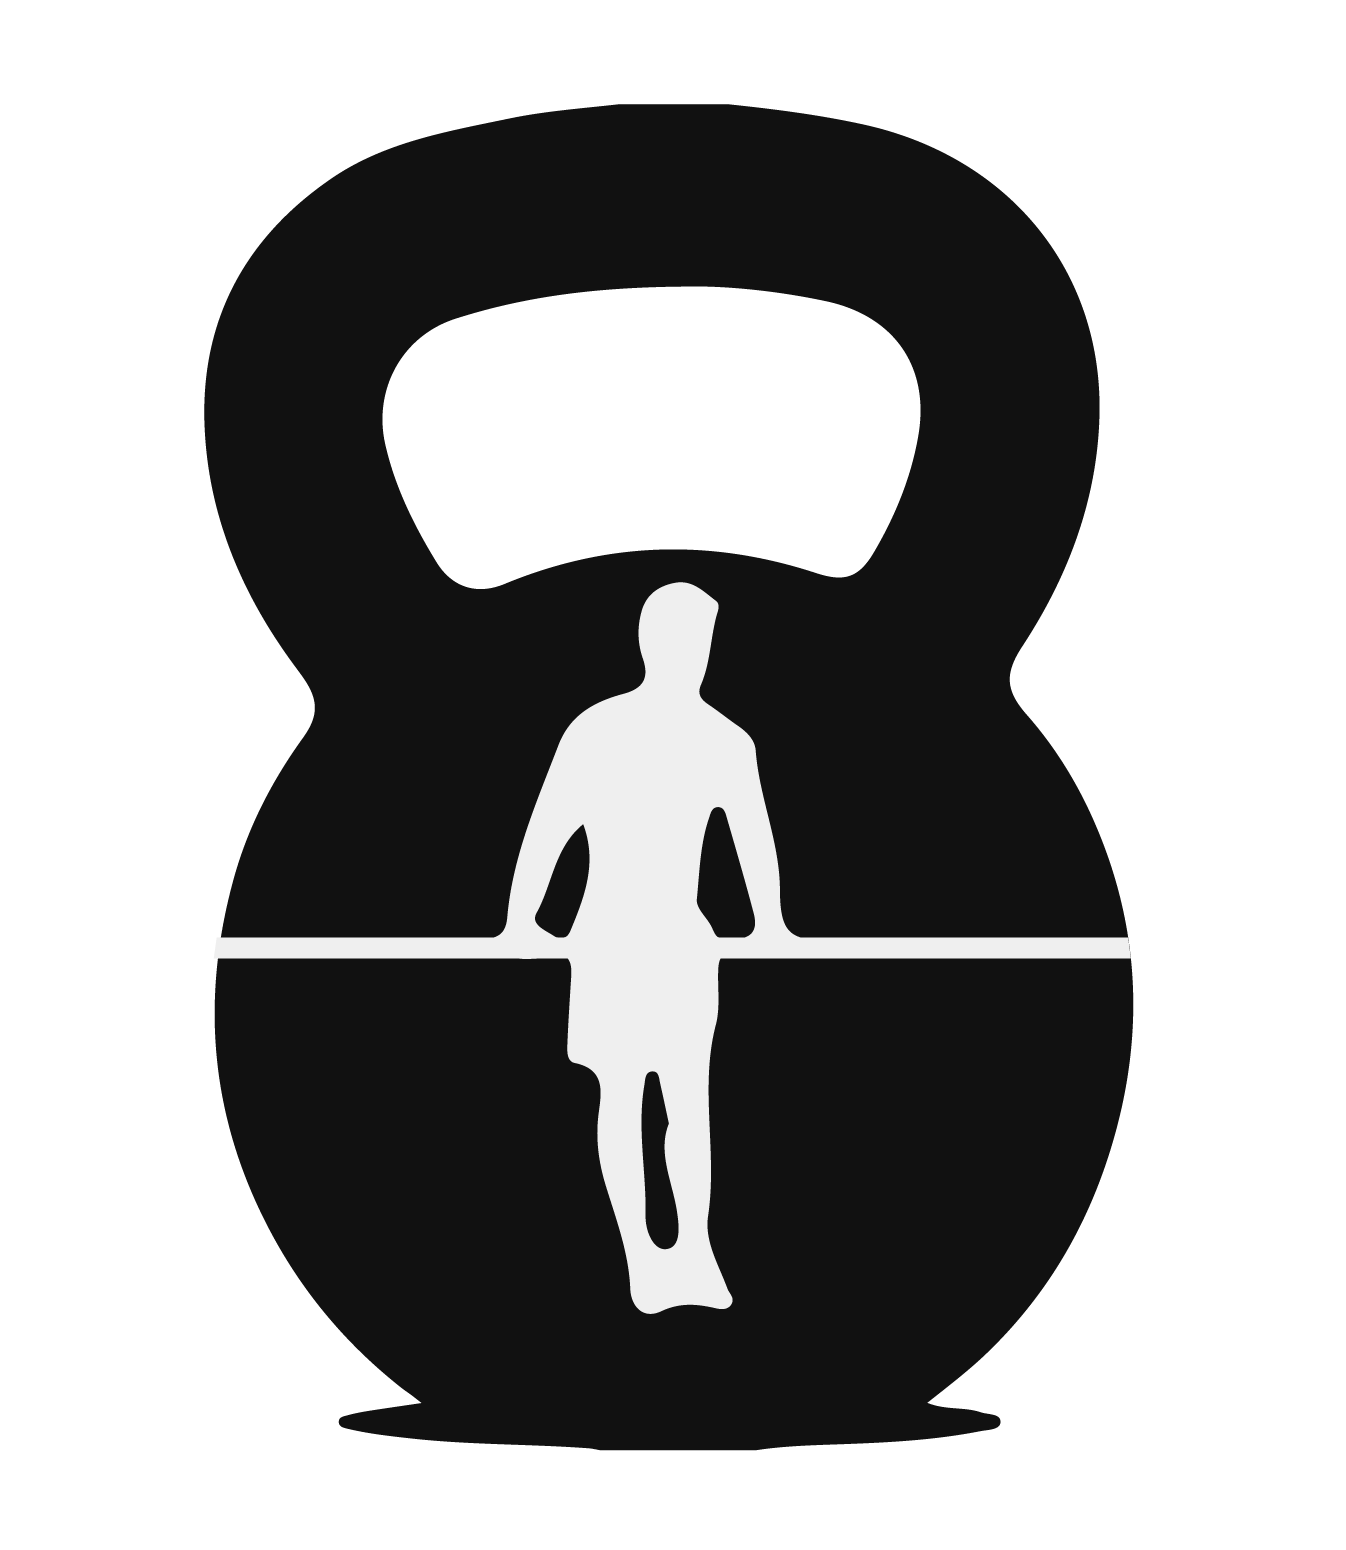 Kettlebell drawing. Silhouette at getdrawings com